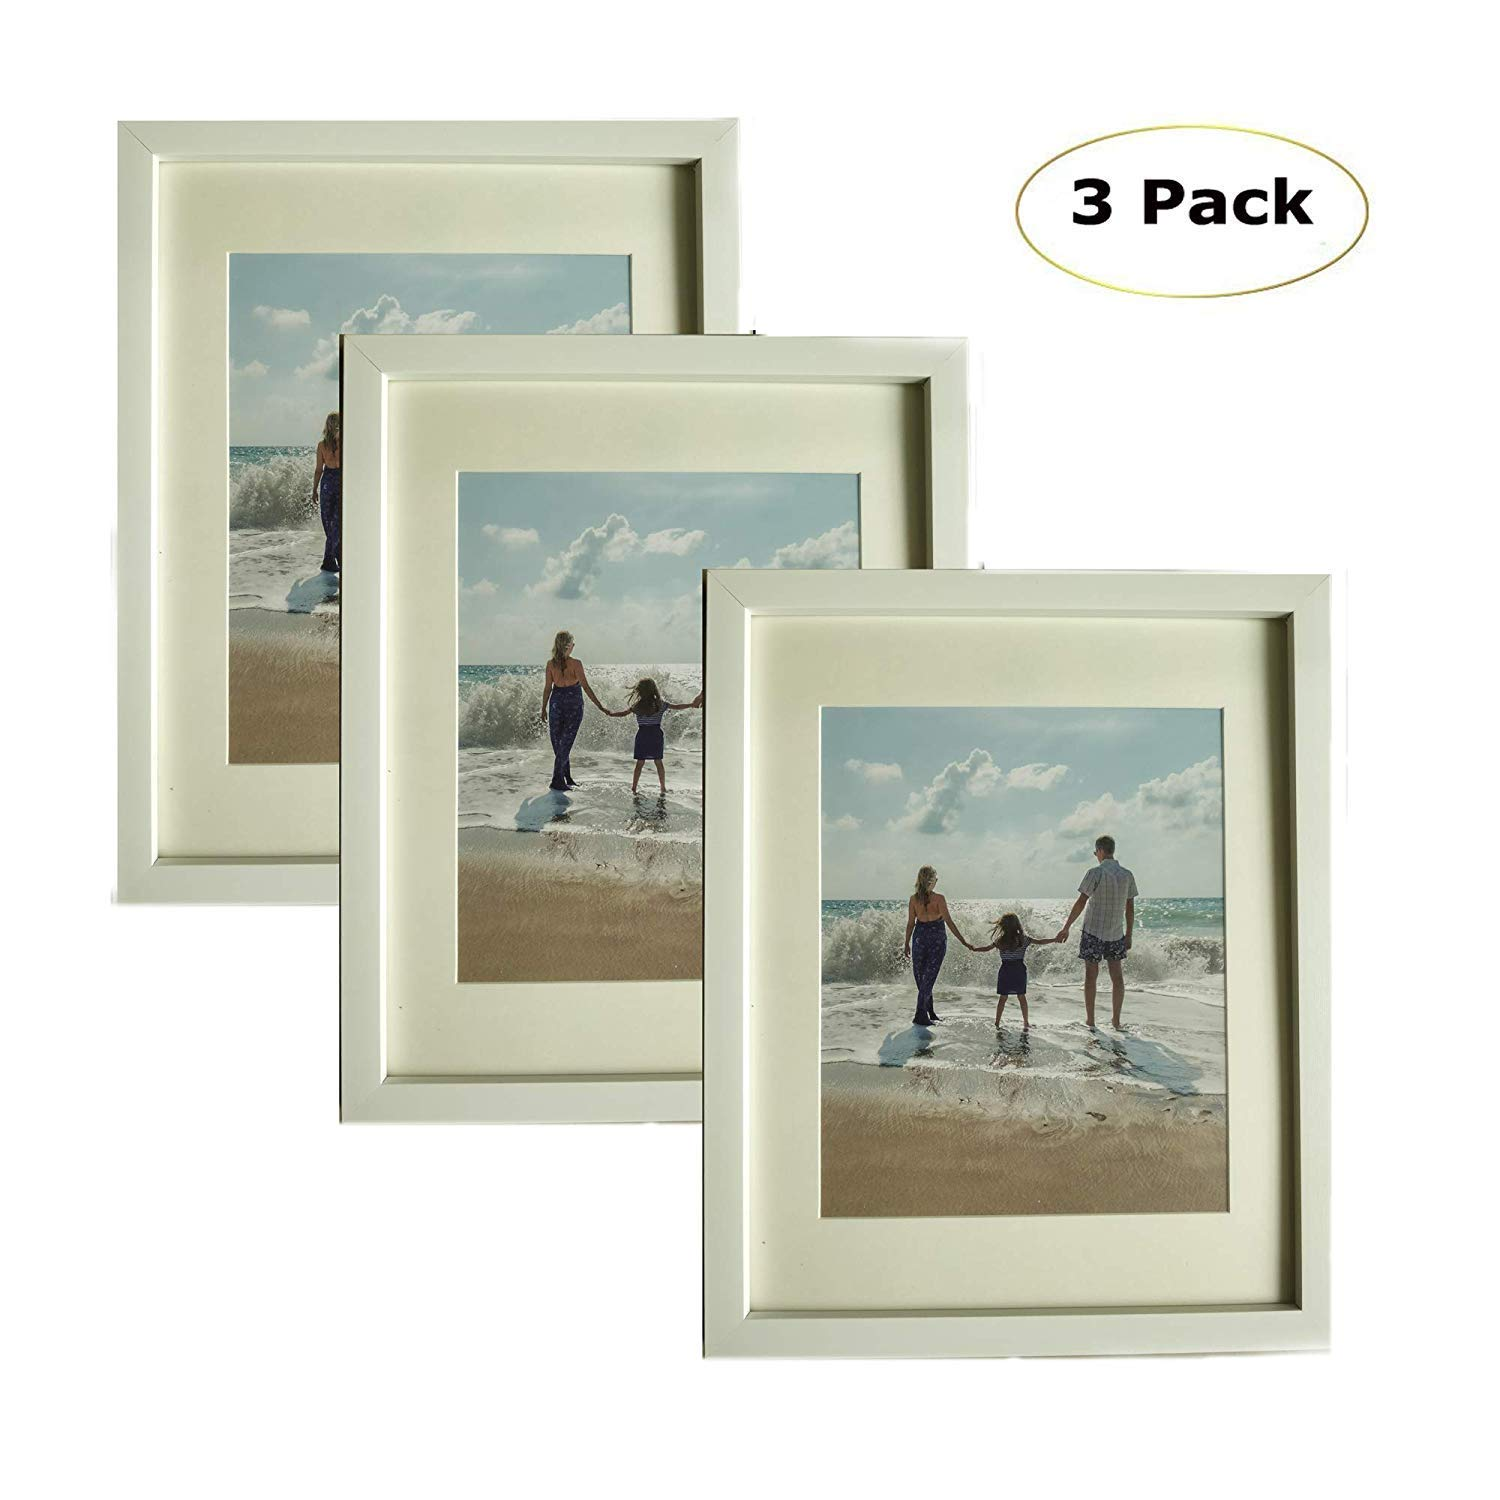 3 Pack, 8 x 10 White Picture Photo Frames - Made to Display Pictures Photo 8 x 10 without Mat or 6 x 8 With Mat Wall & Tabletop Frames